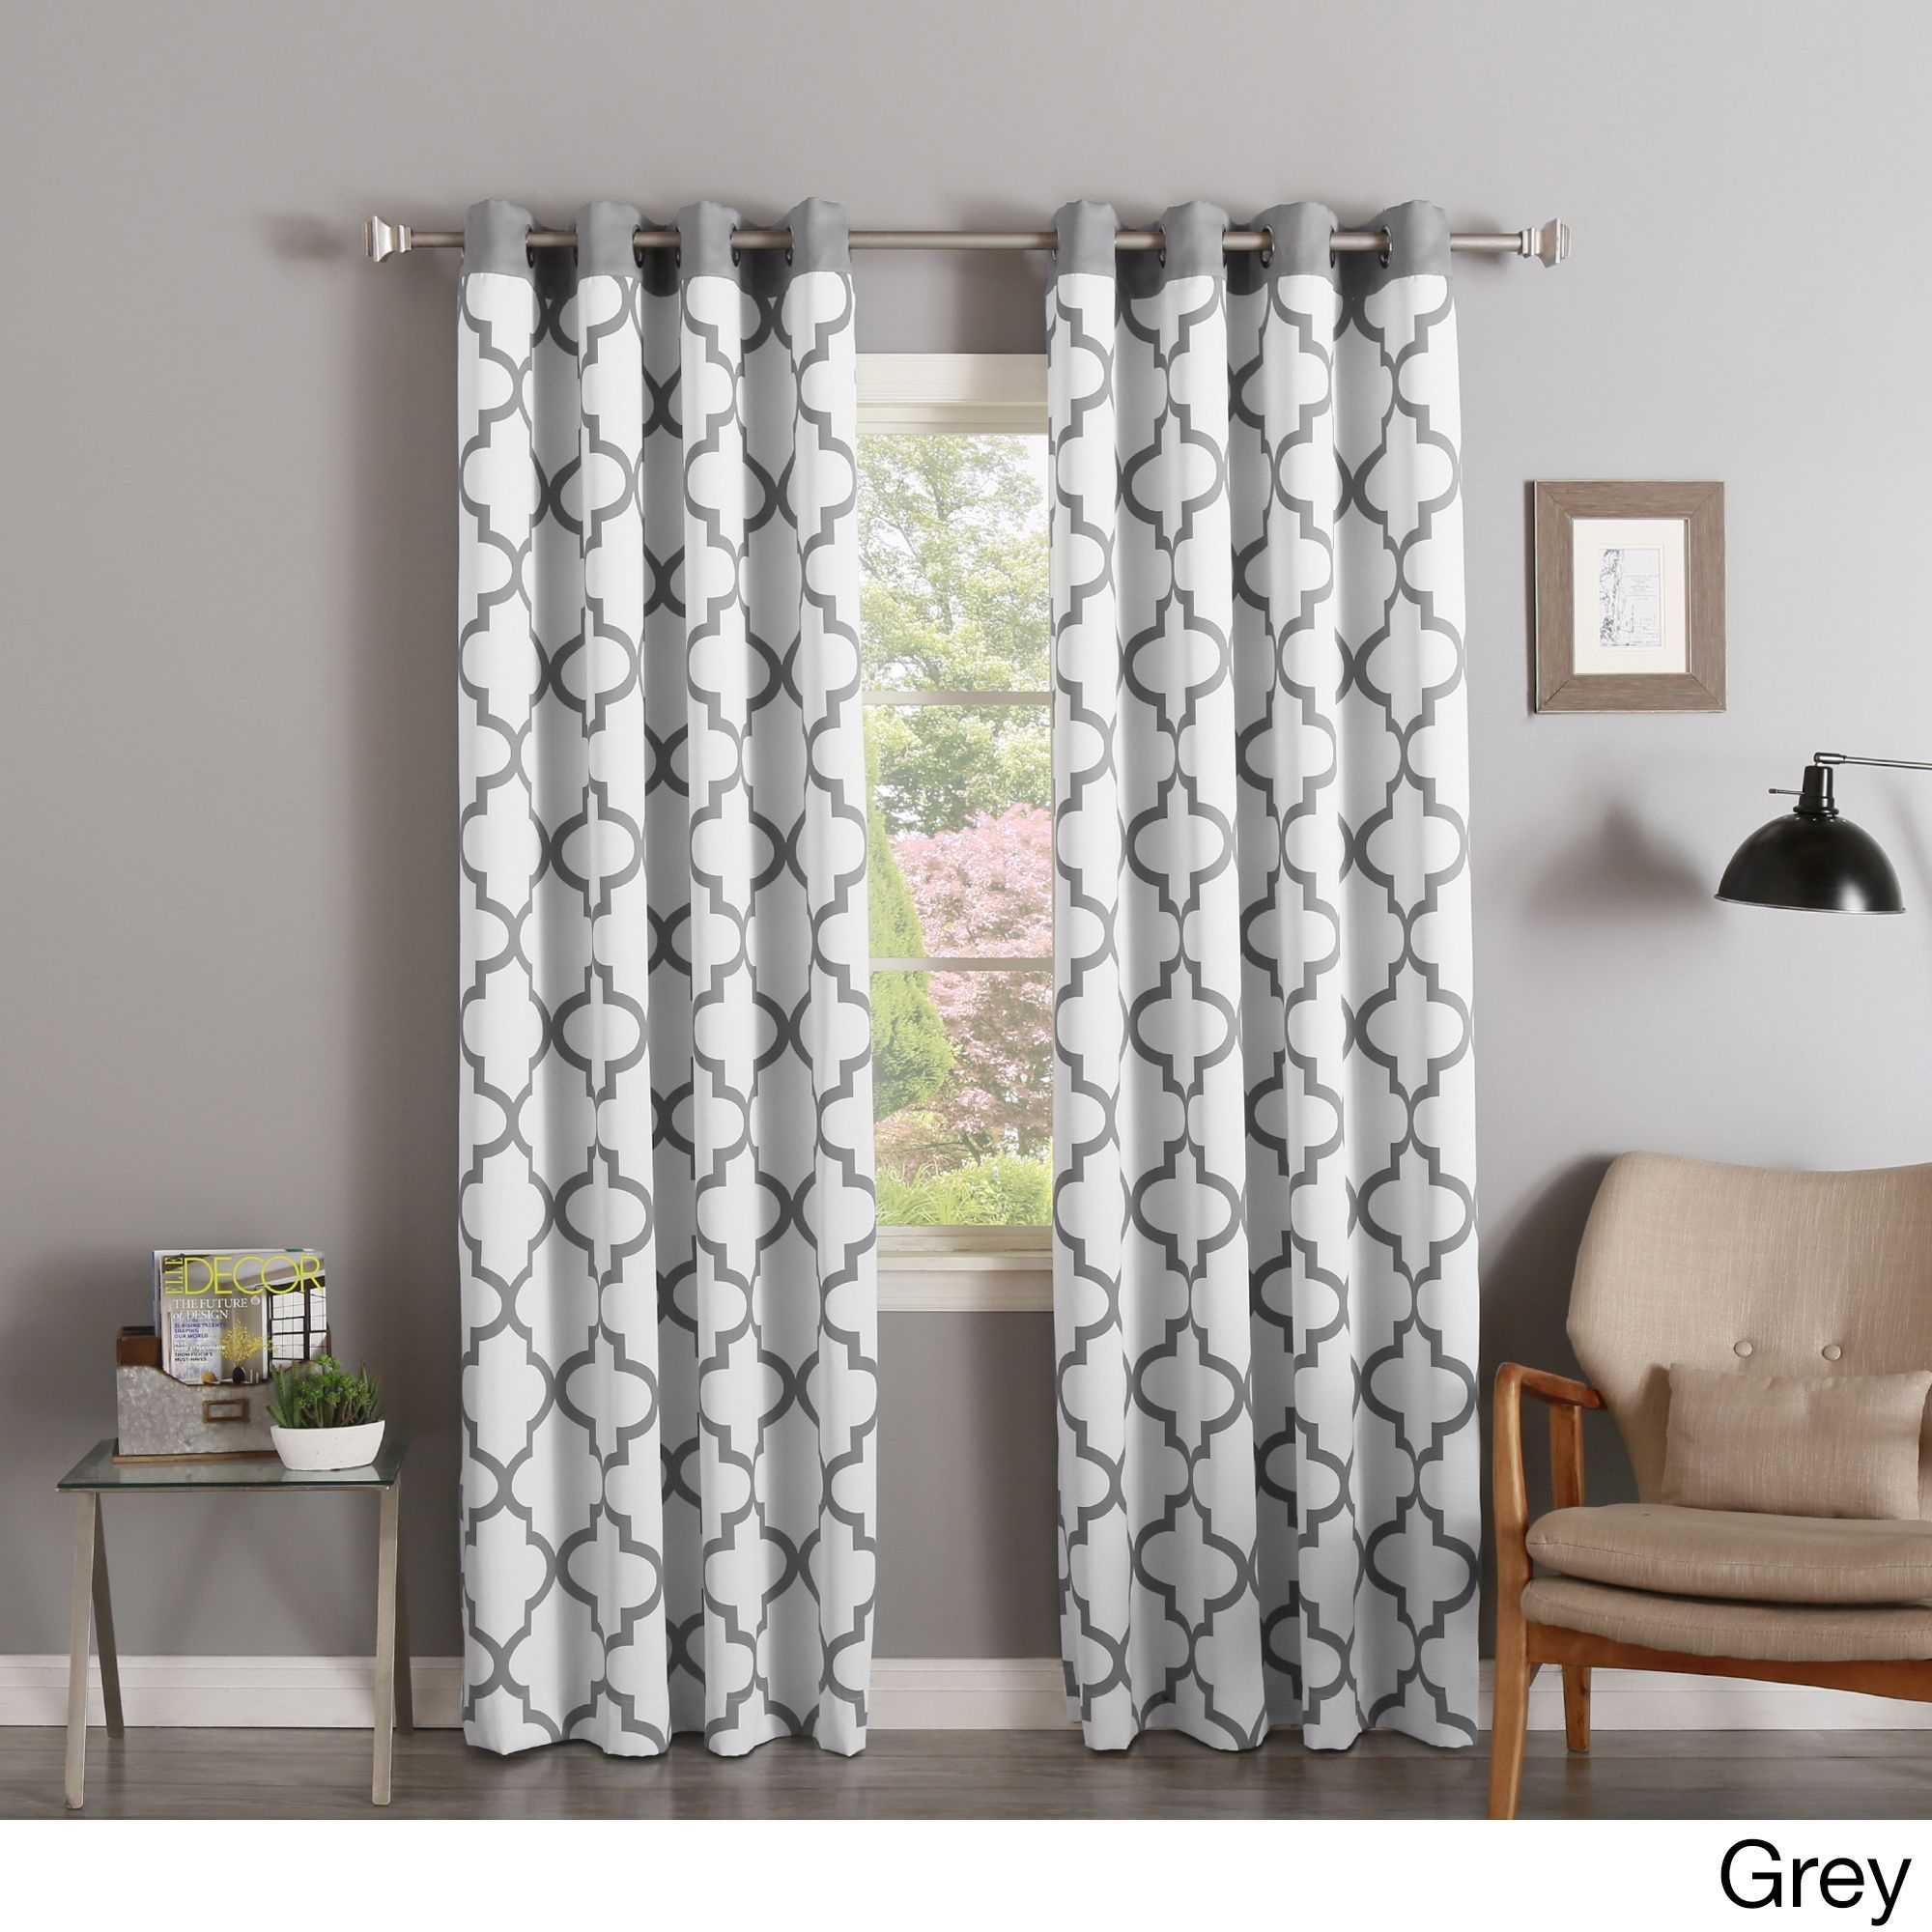 Aurora Home Moroccan Tile Print Room Darkening Grommet Top Throughout Edward Moroccan Pattern Room Darkening Curtain Panel Pairs (View 9 of 20)